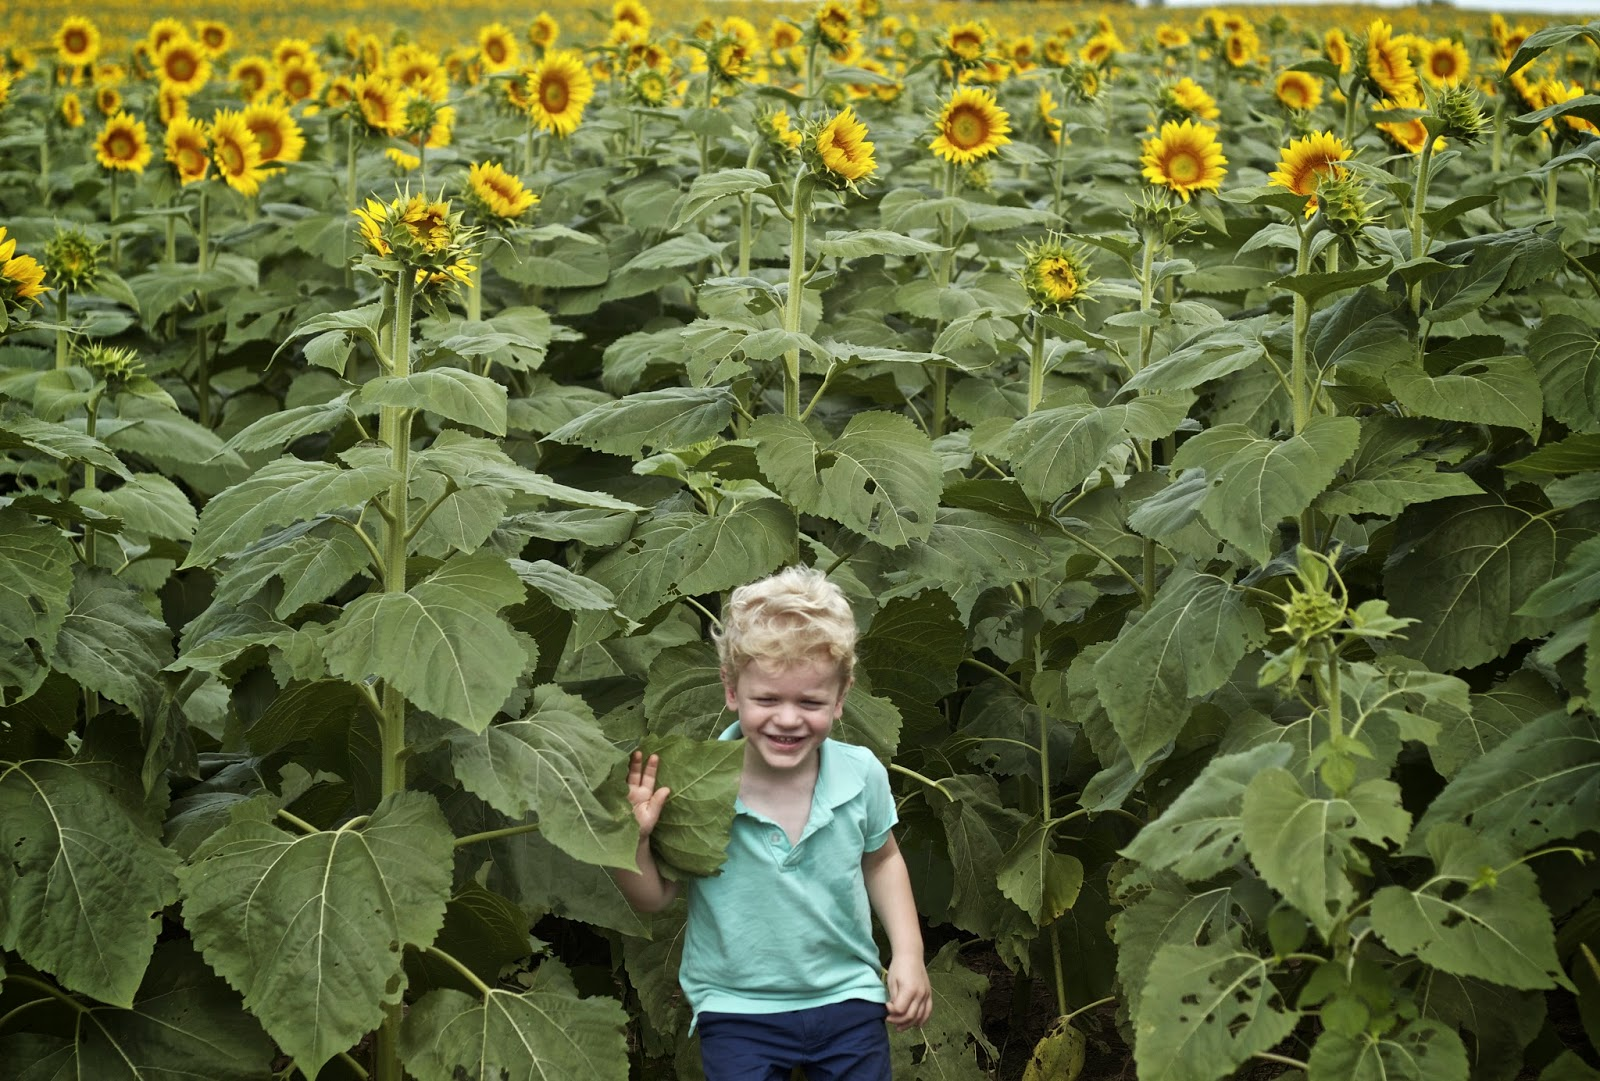 The Sunflower Field in Kansas